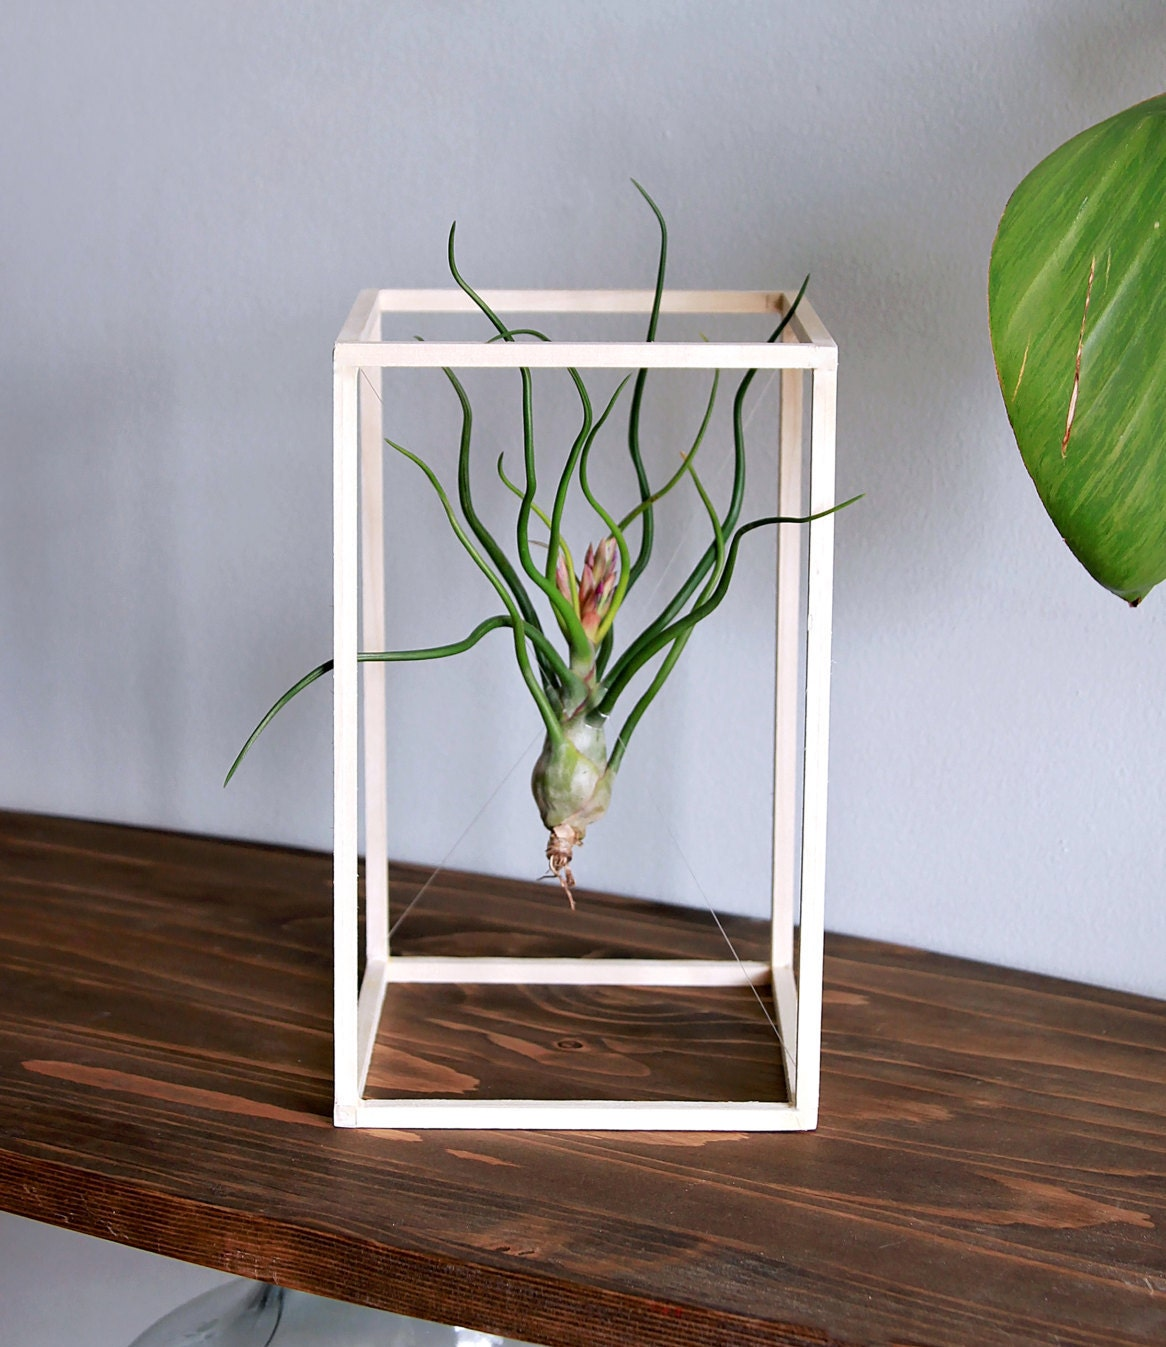 Life boxed in air plant minimalist art desk plant for Air plant art